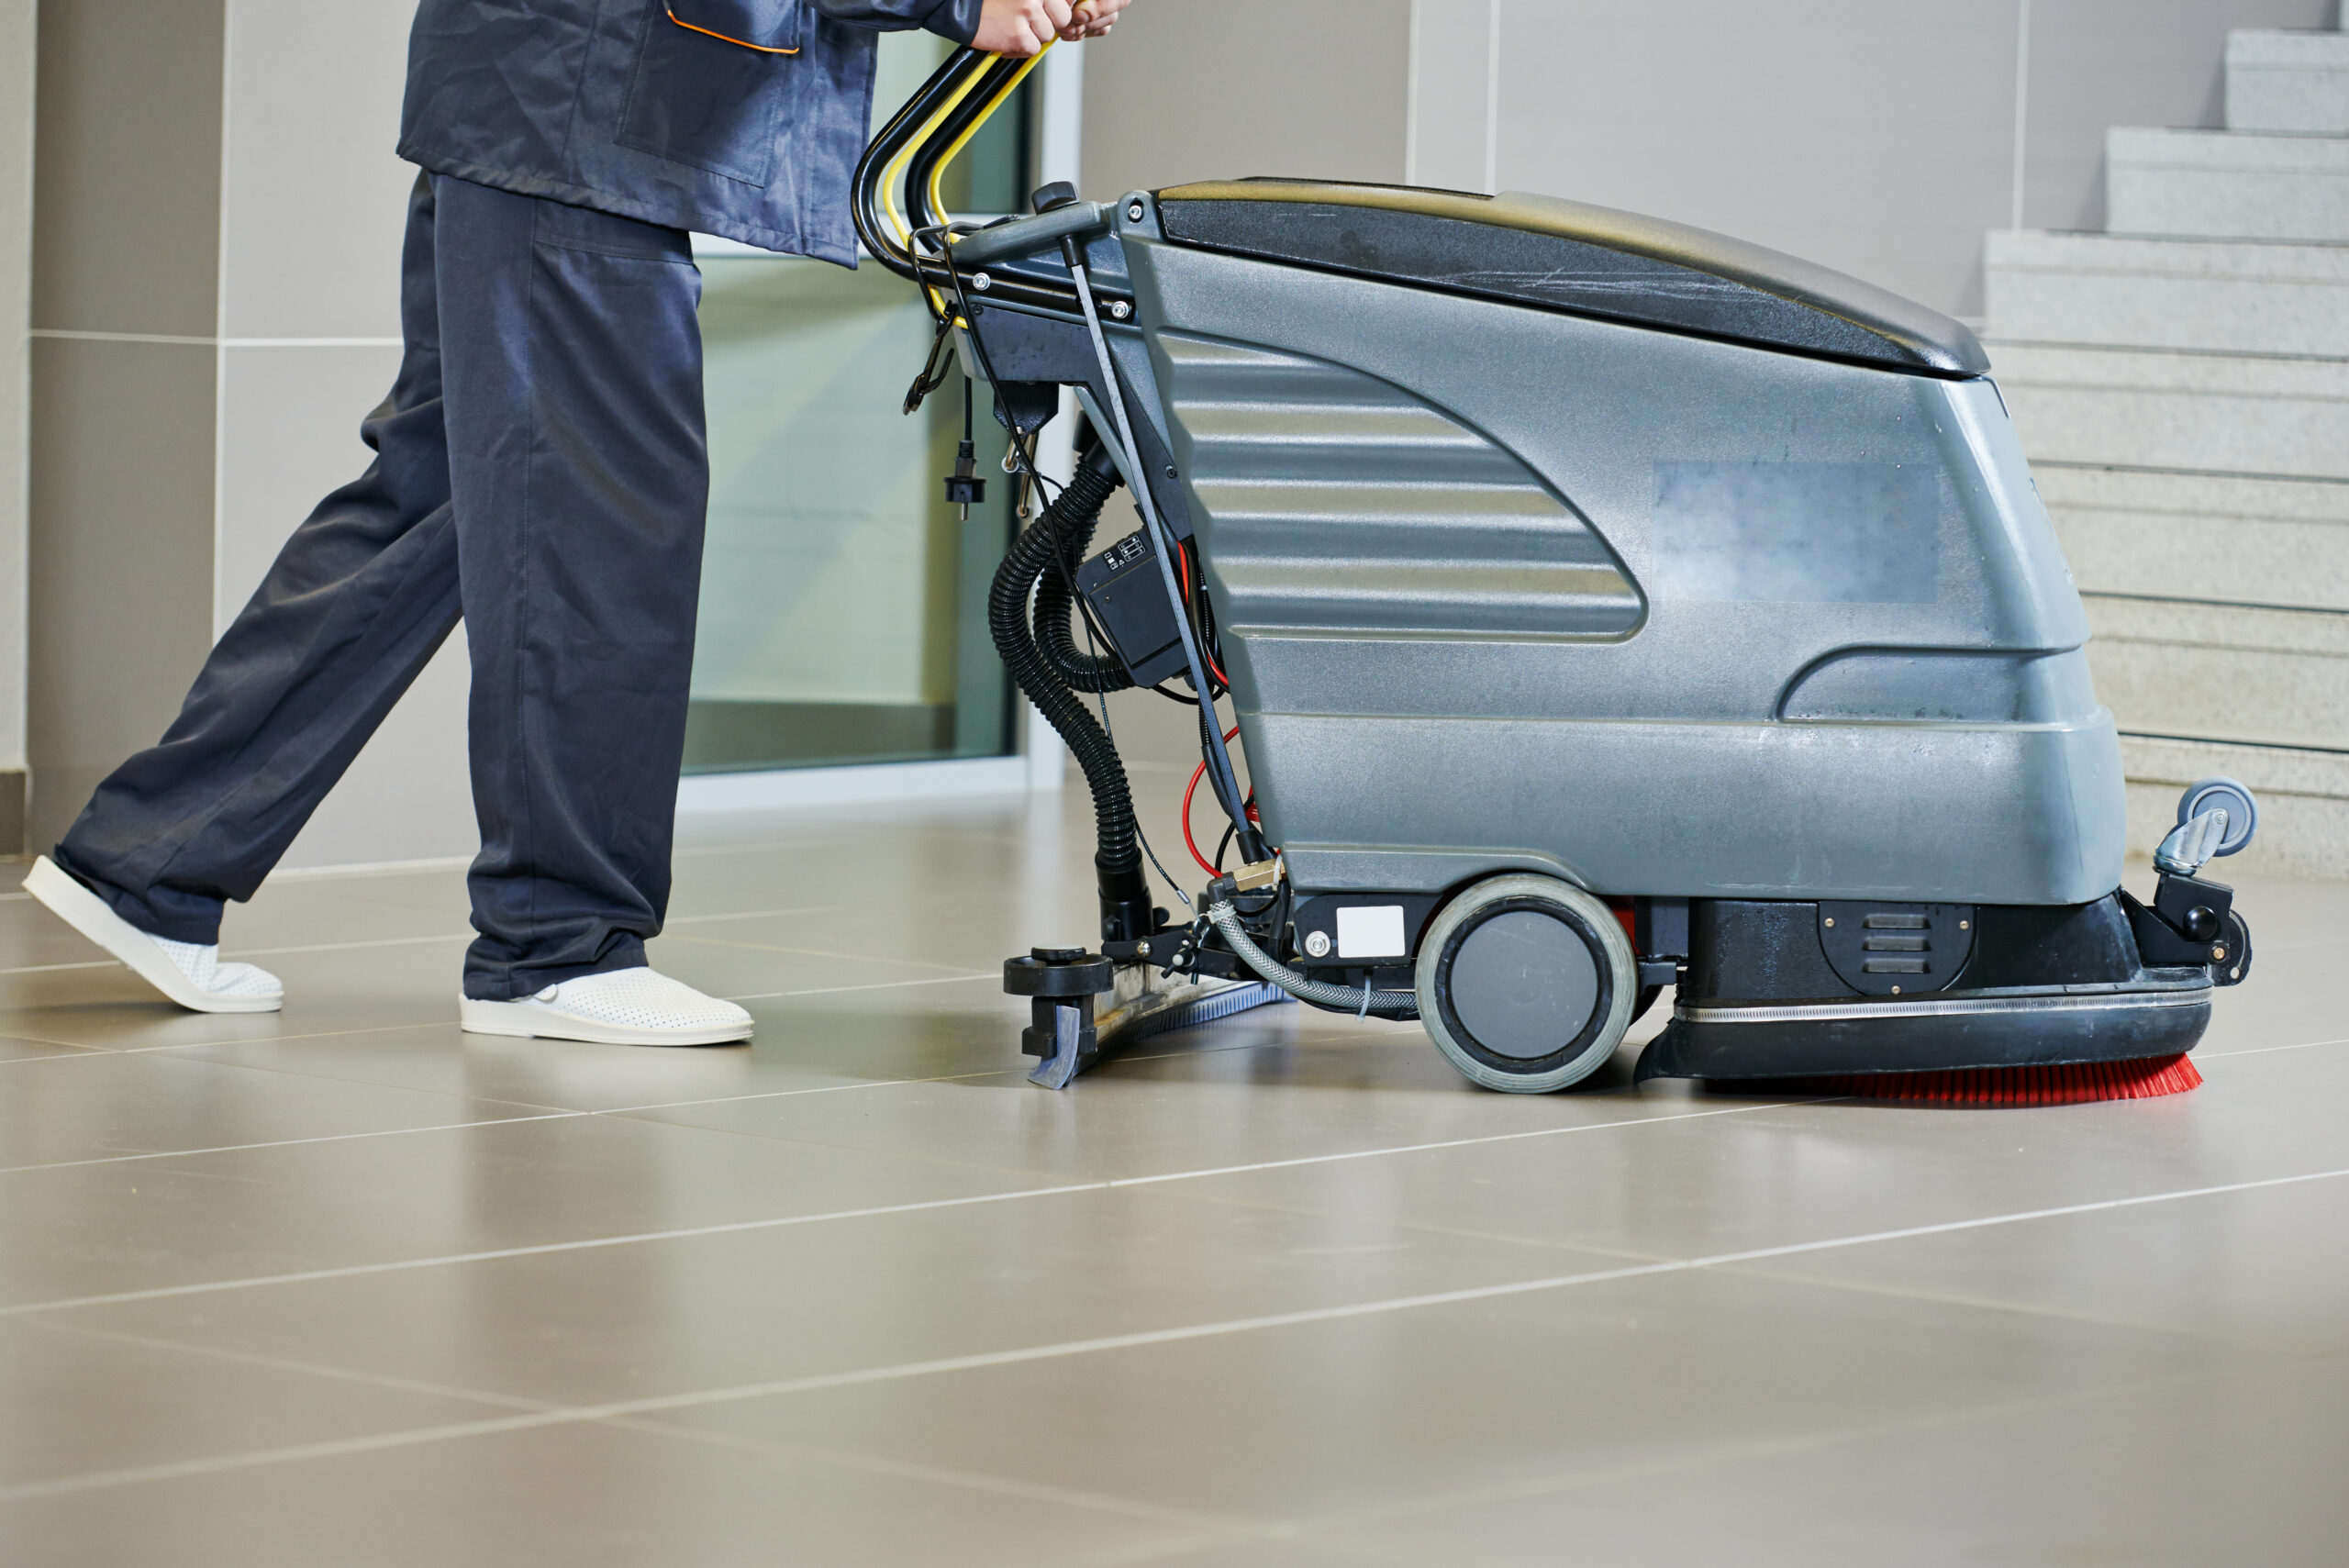 Achieve The Best Commercial Cleaning Results With Pre-Sweeping